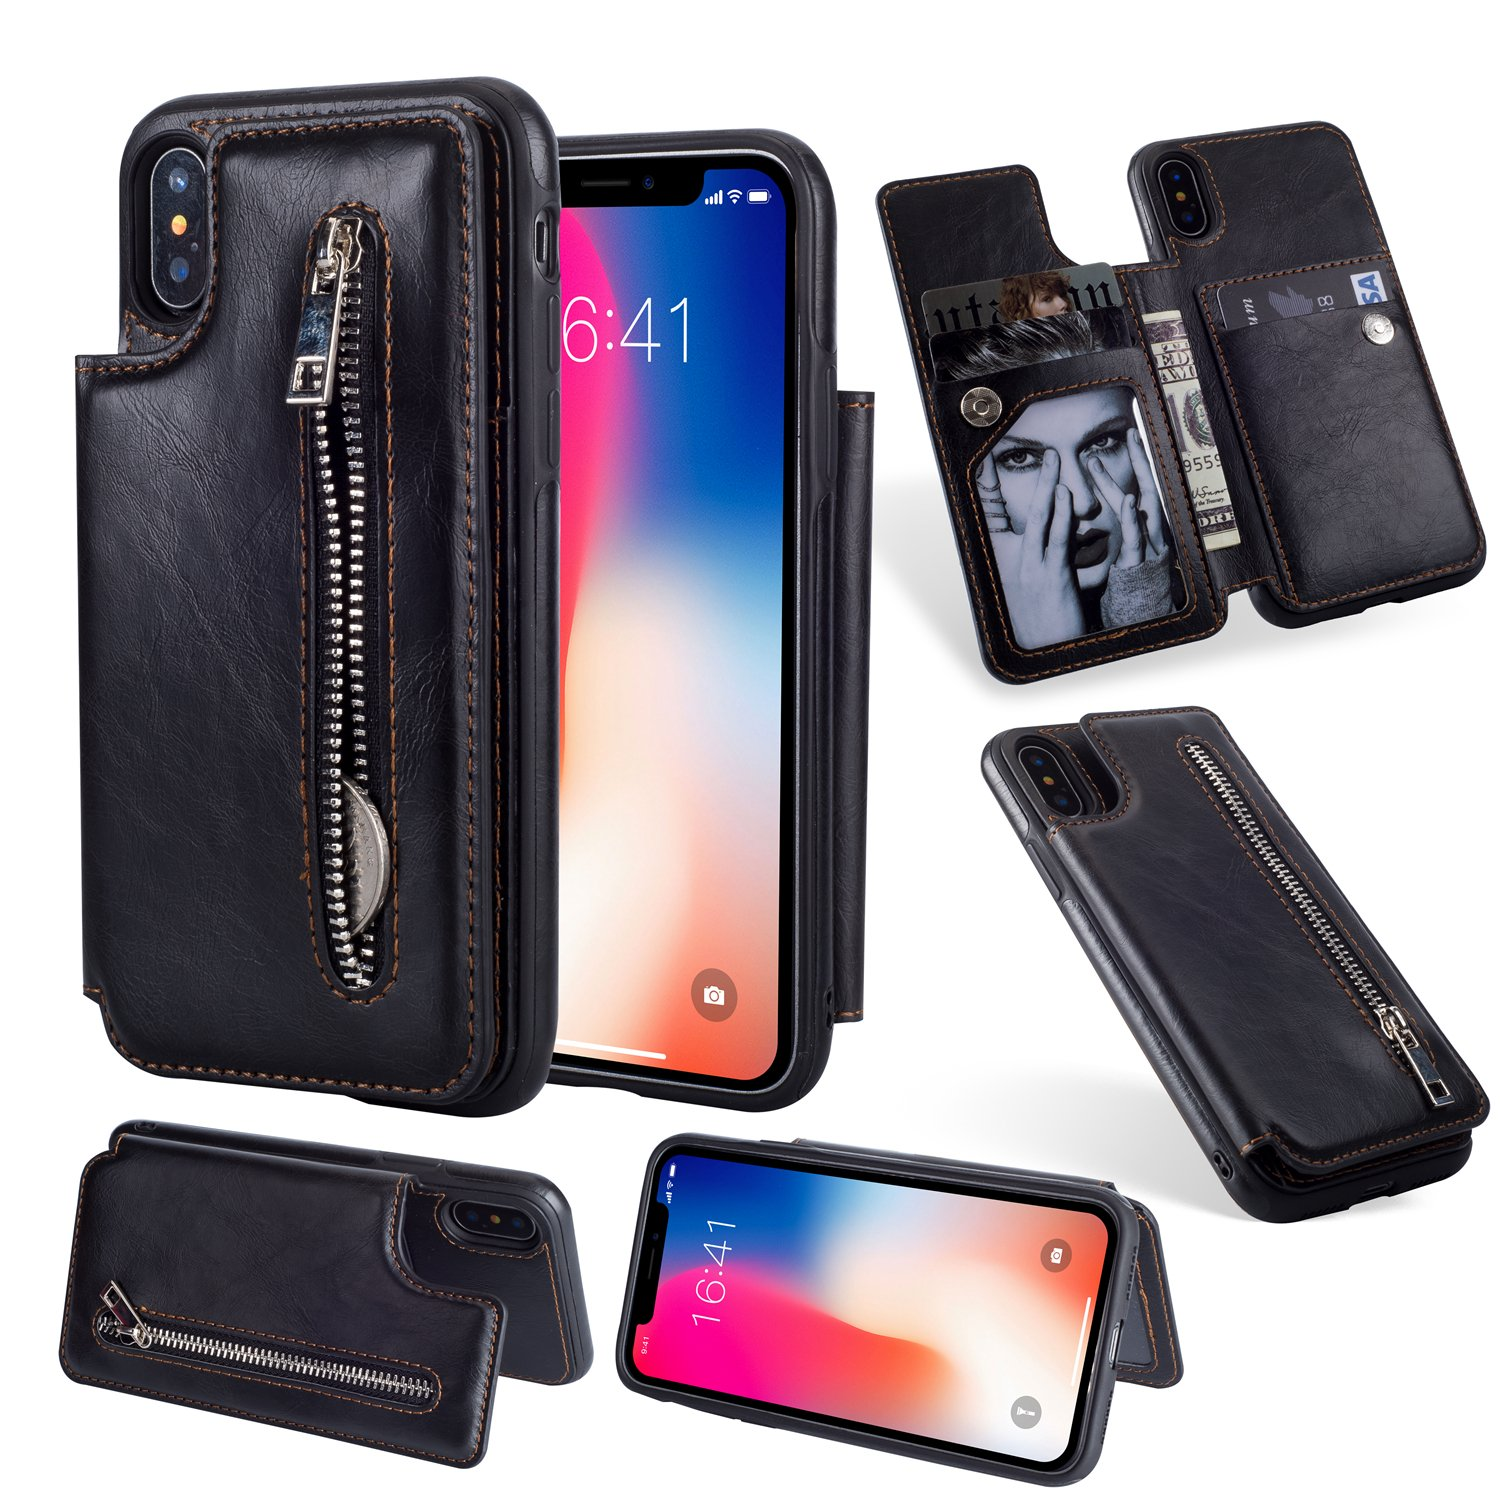 Zipper Wallet Case for iPhone XS Max 6.5 inch,Shinyzone iPhone XS Max 6.5 inch Case with Money Pocket [One Magnetic Buckle] Premium Vintage Leather PU Flip Back Cover-Black